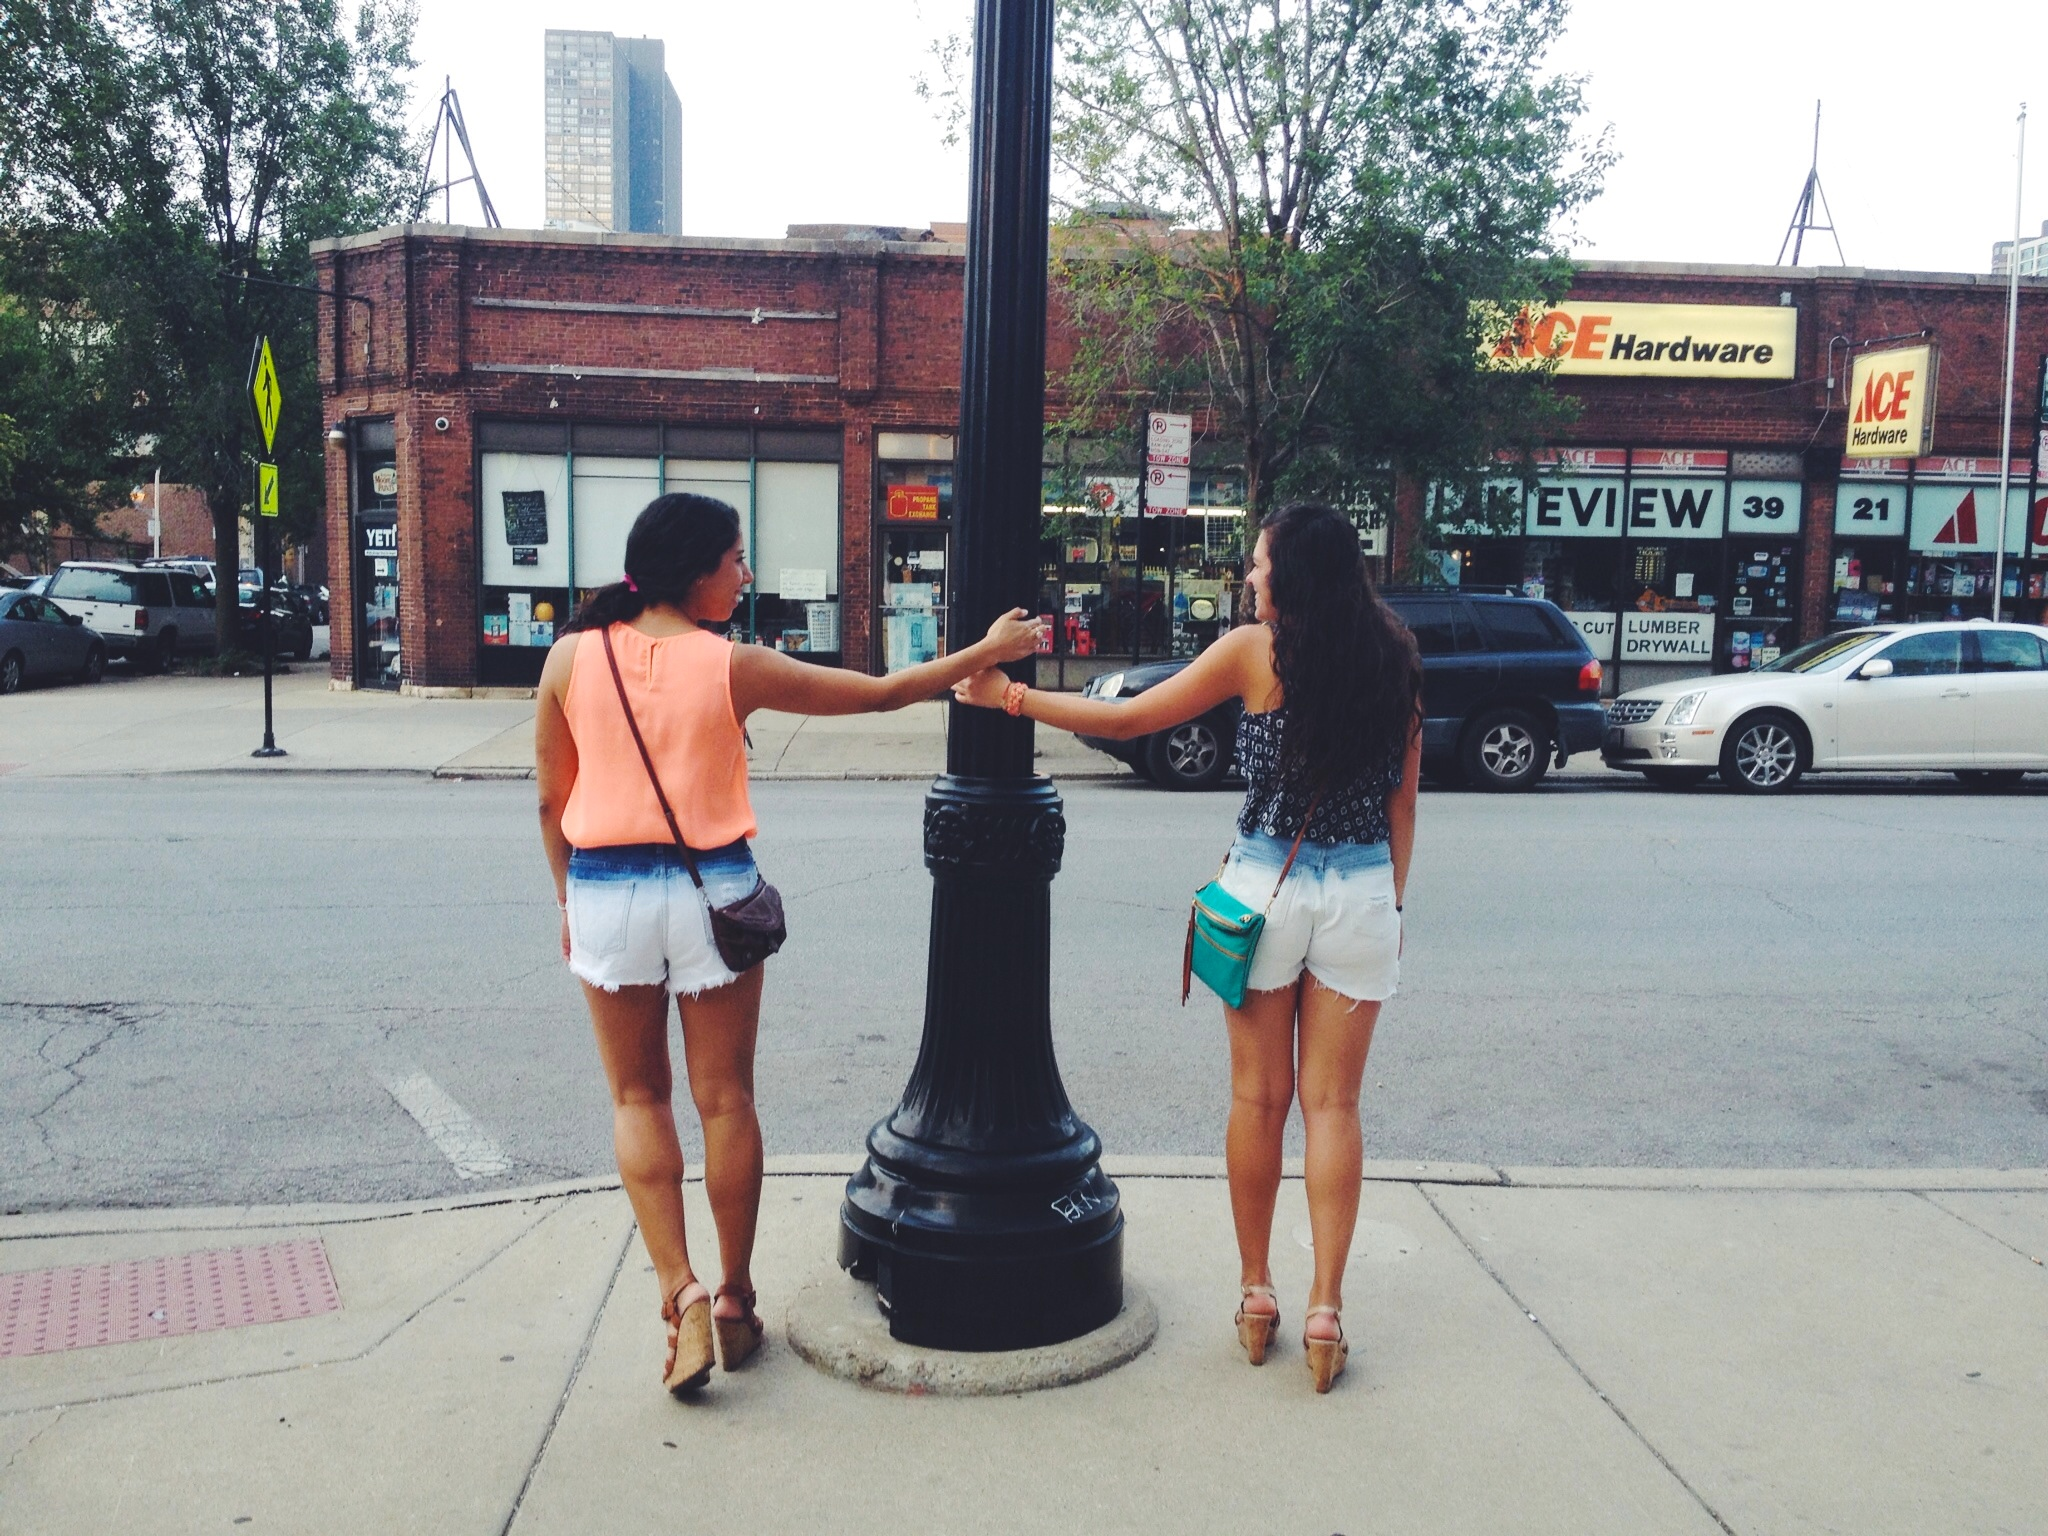 Hanging out in ombré shorts, exploring Wicker Park with Becca and some friends.